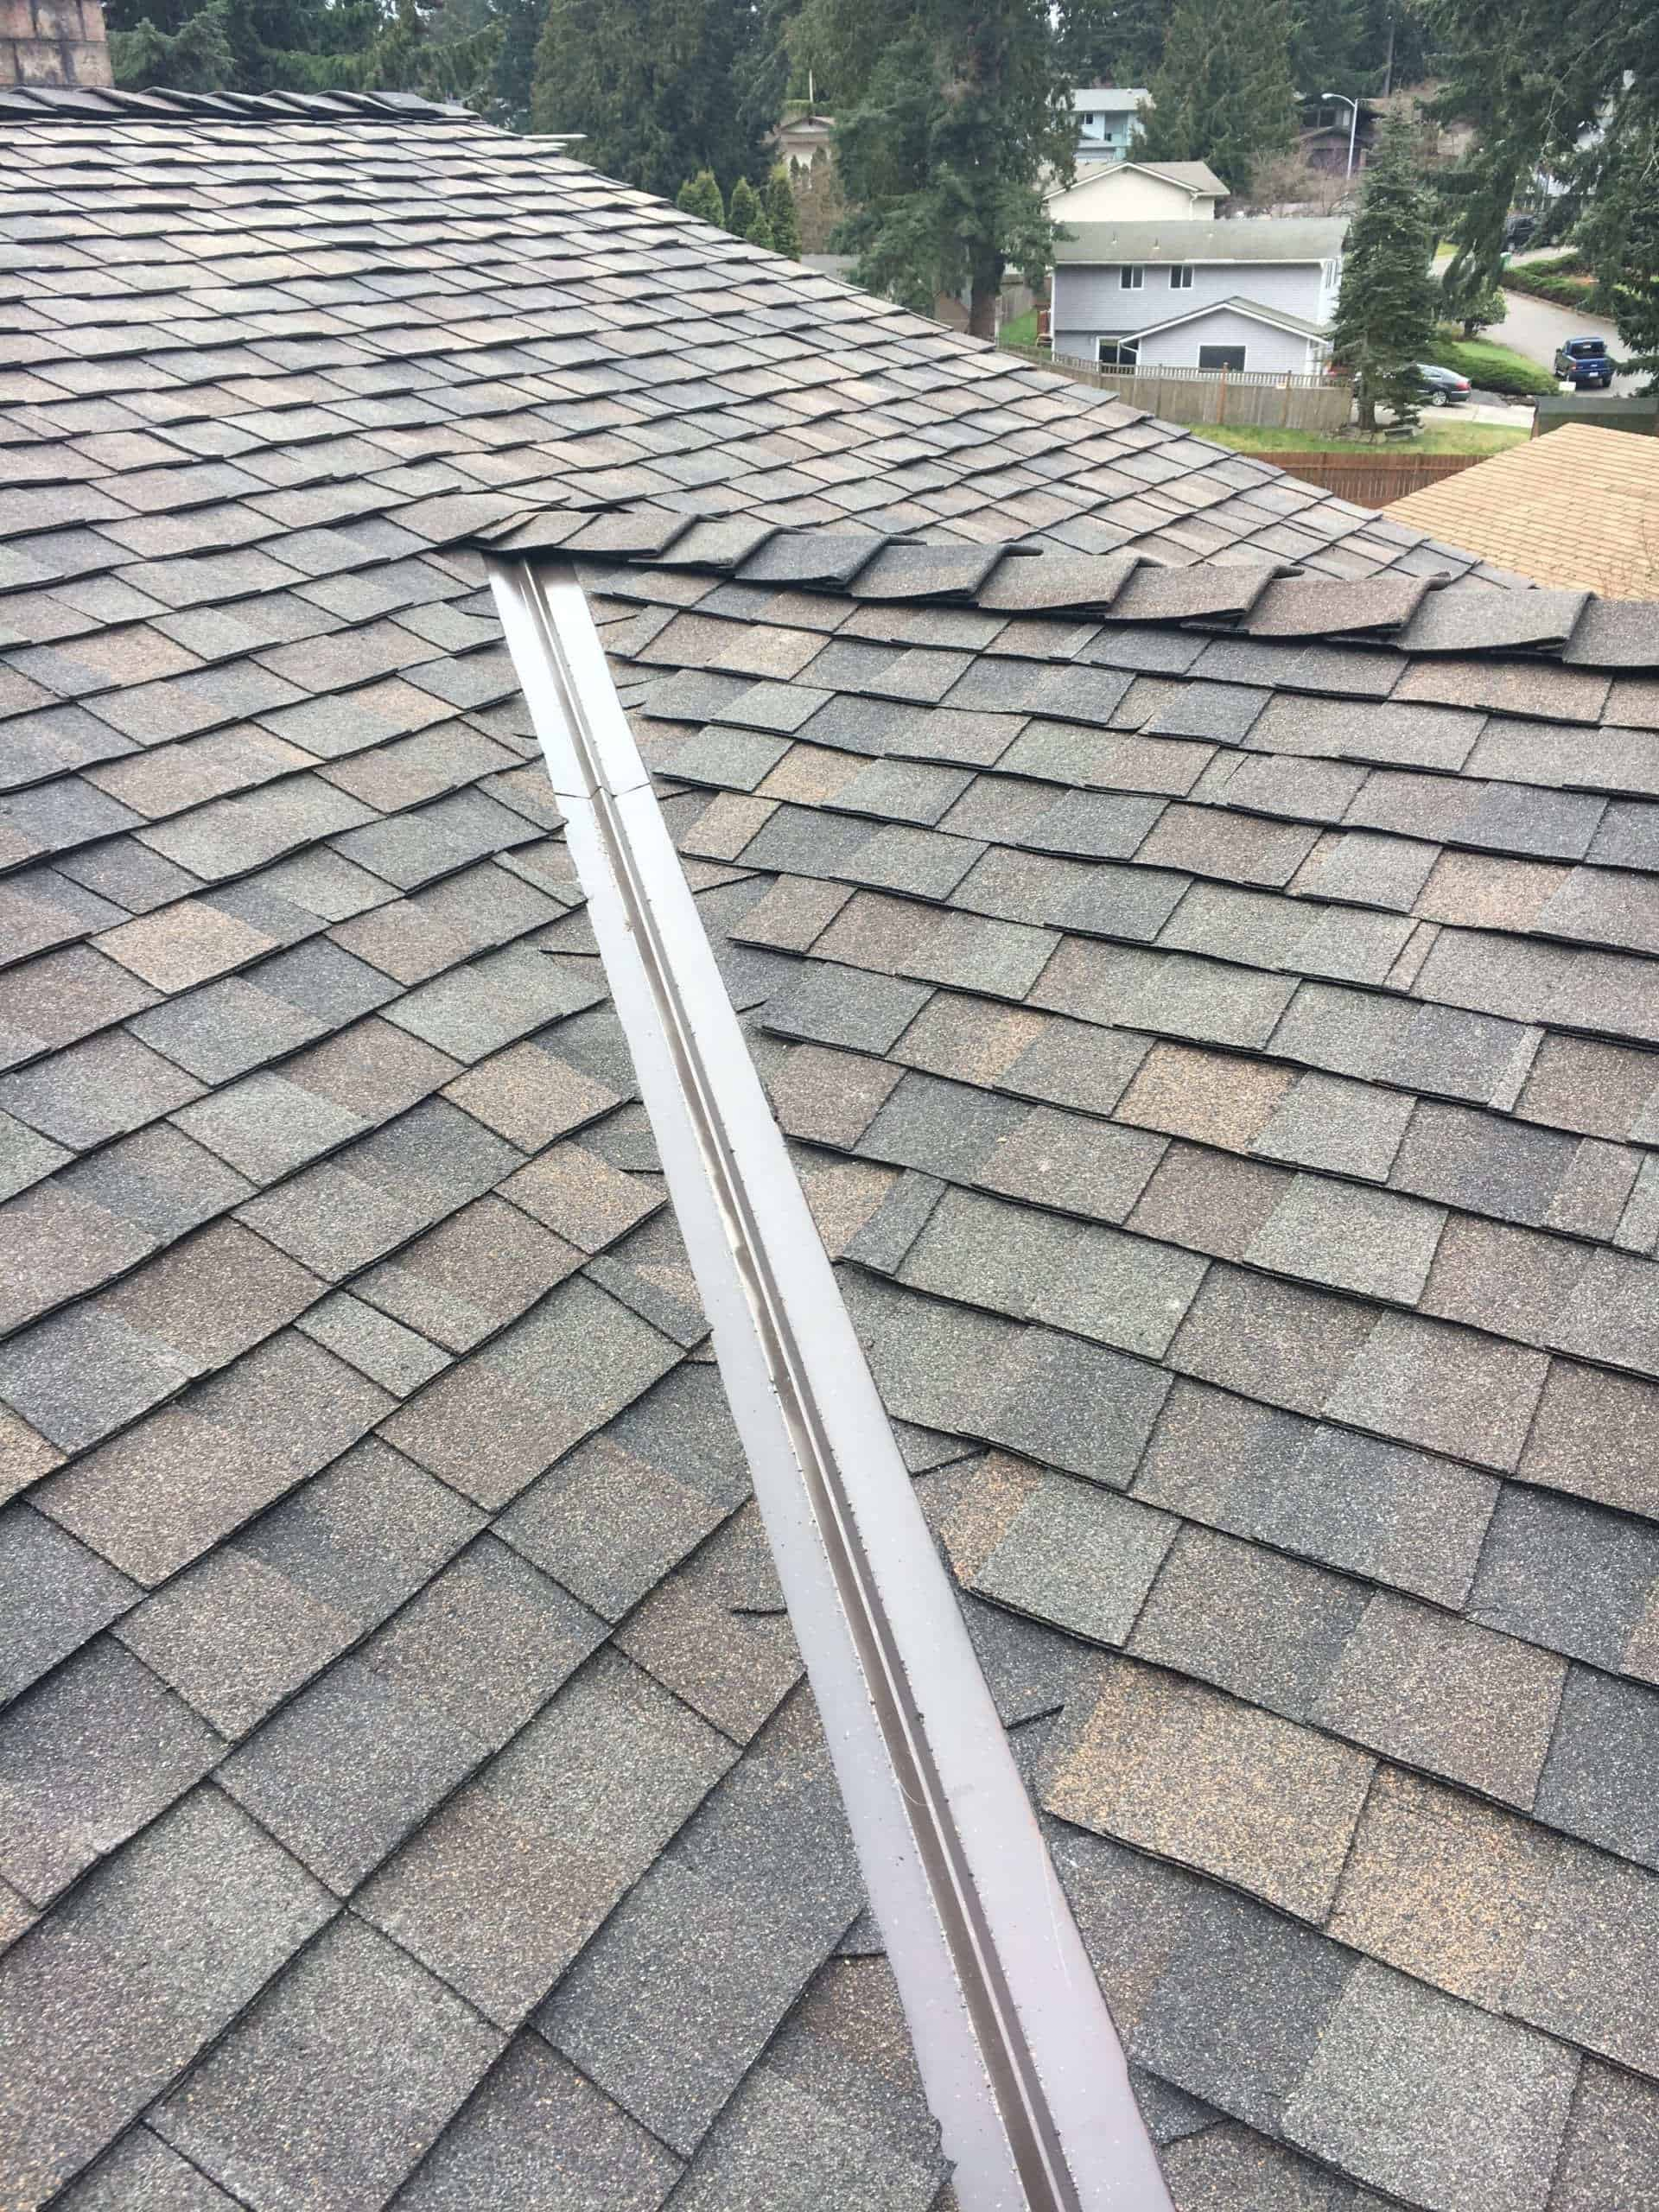 edmonds wa roof replacement